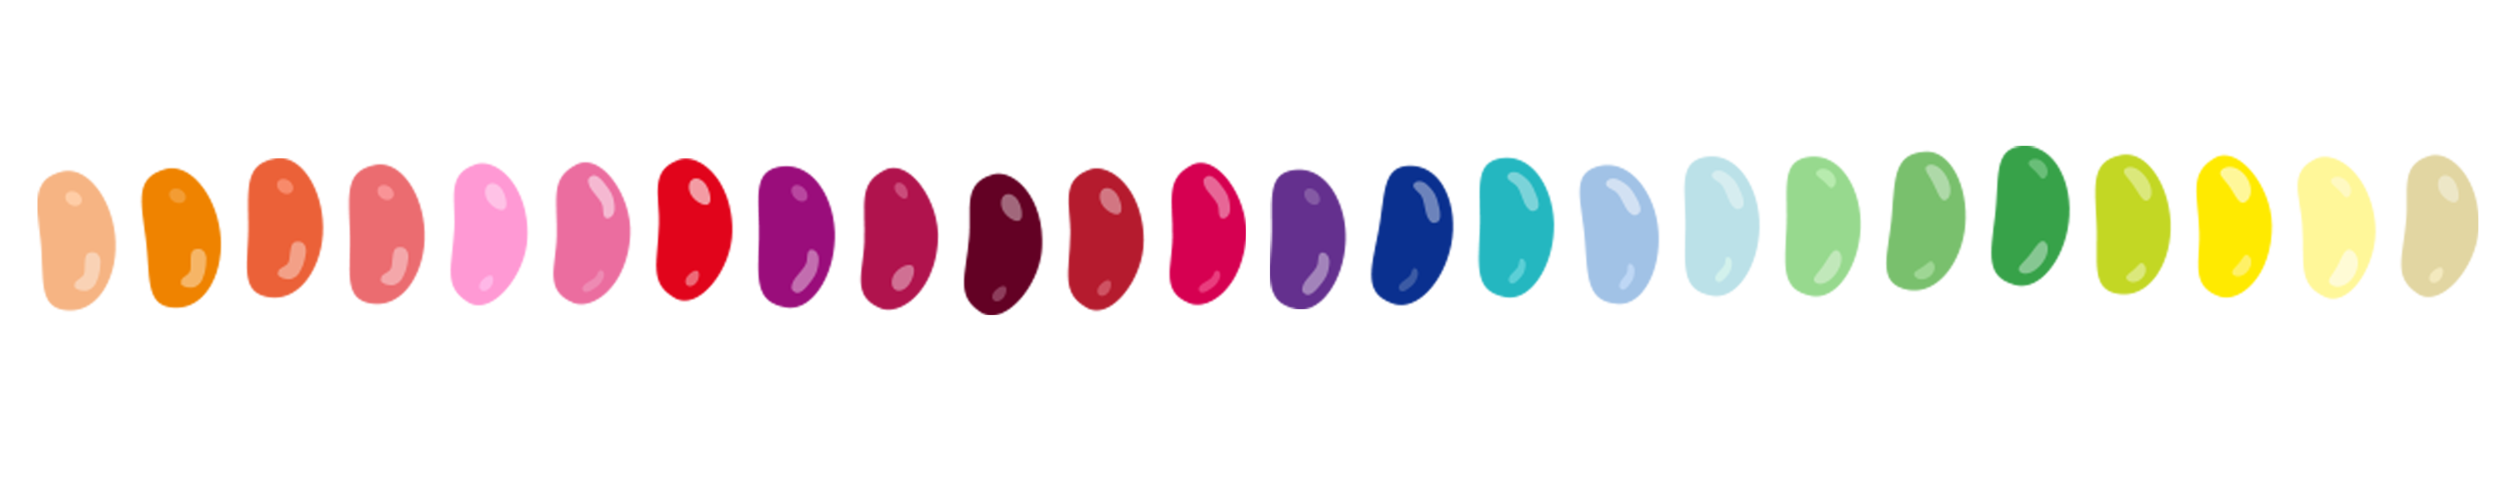 jellybeans.png